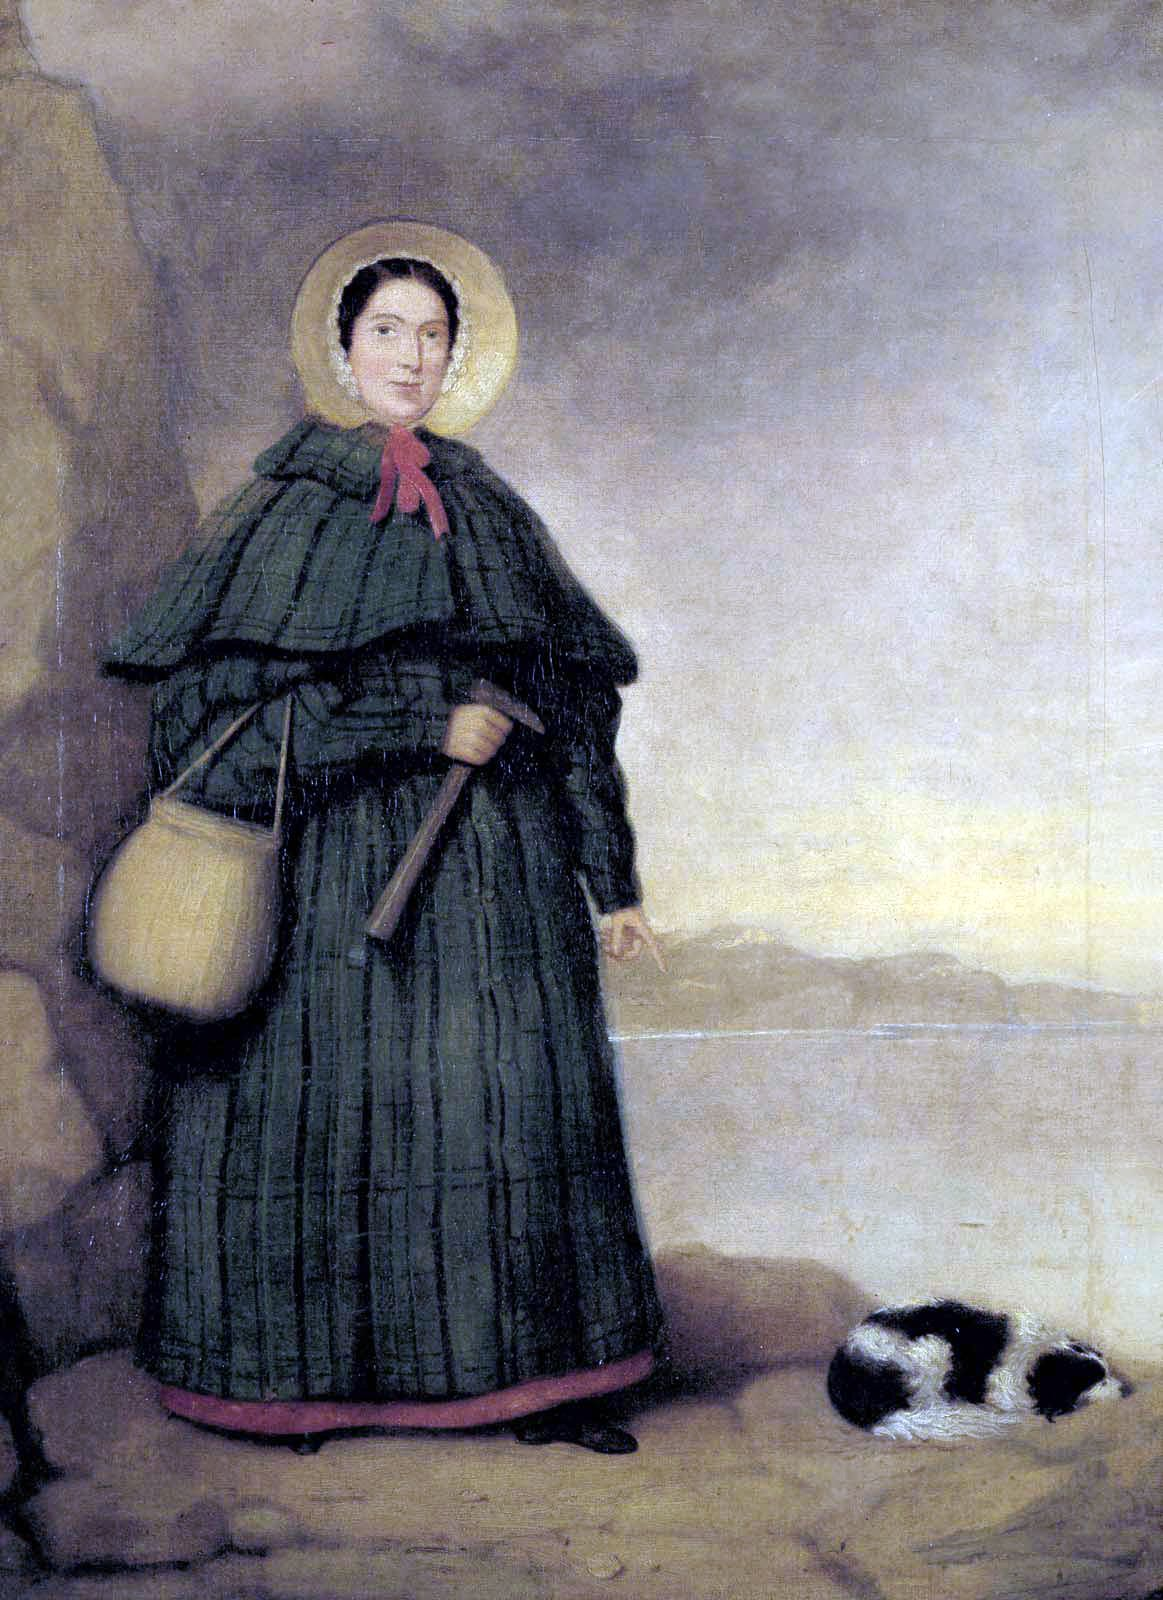 Tableau de Mary Anning (internet)